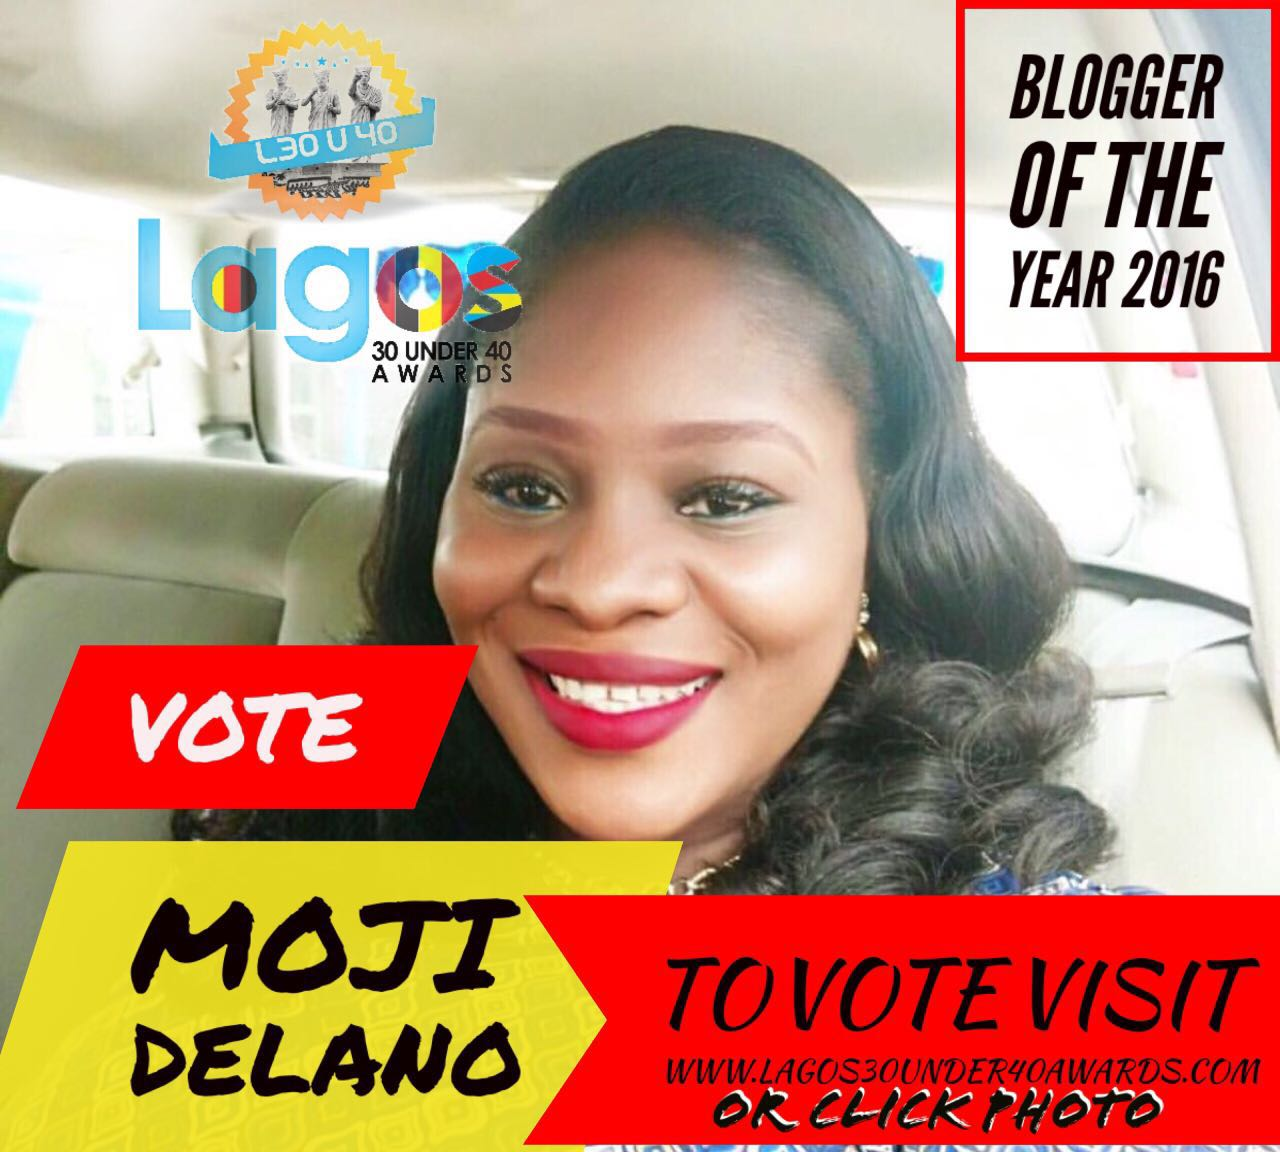 Moji Delano for Blogger of The Year-banner-300